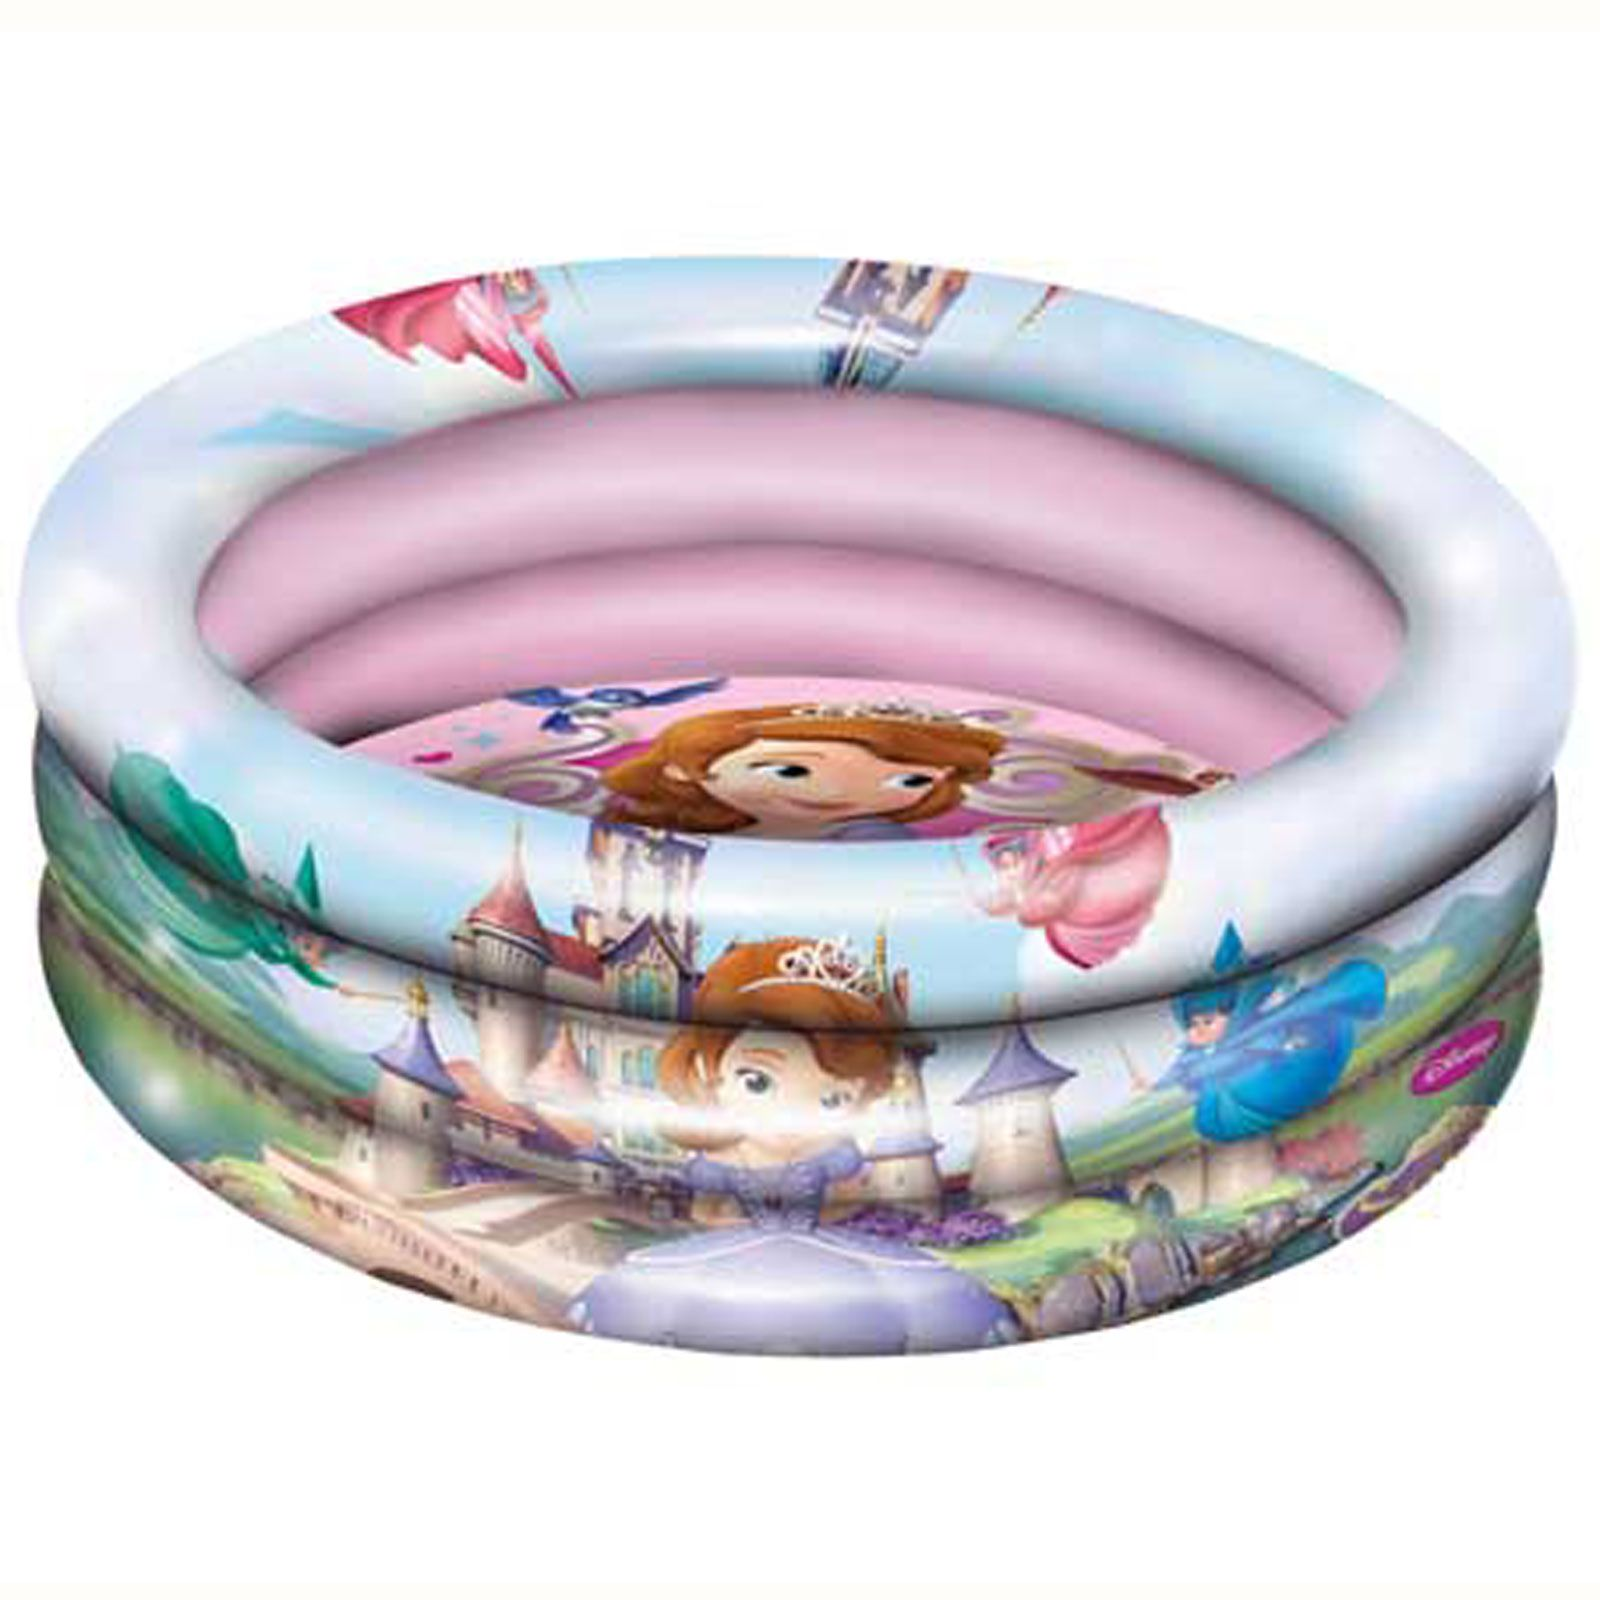 Sofia The First Paddling Pool Amp Ball Pit Disney Princess